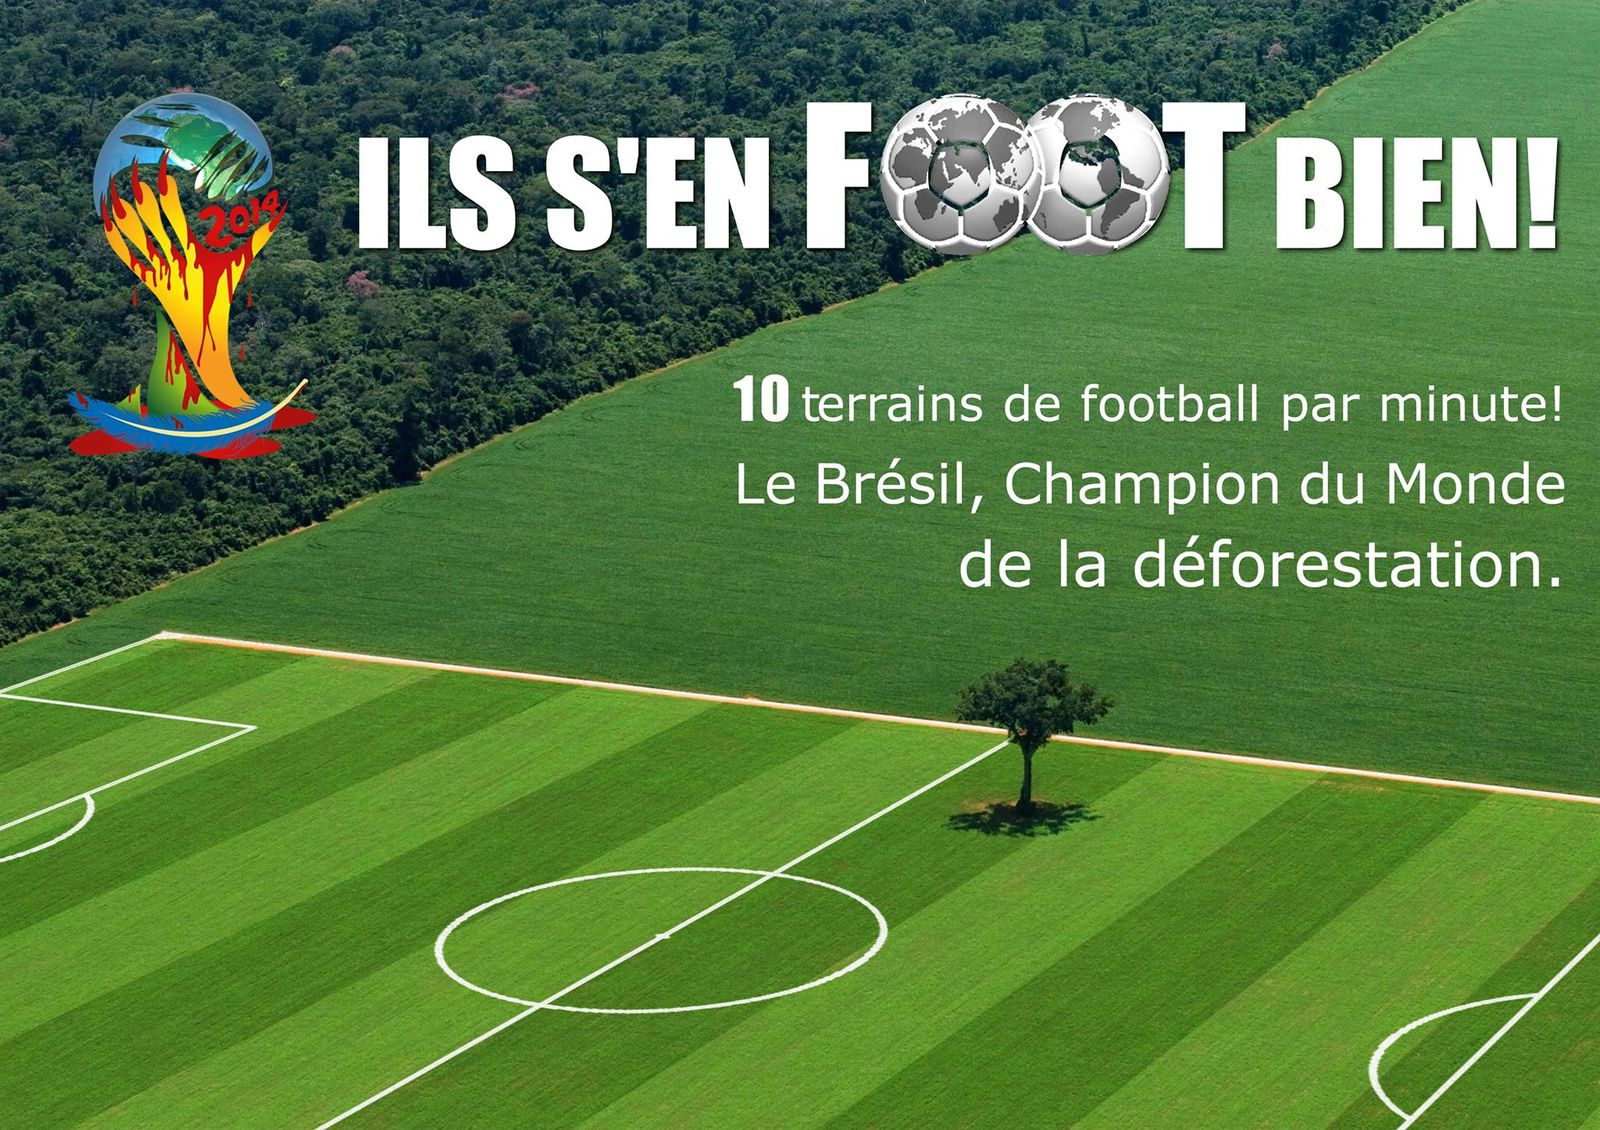 Deforestation Bresil football Brésil champion du monde